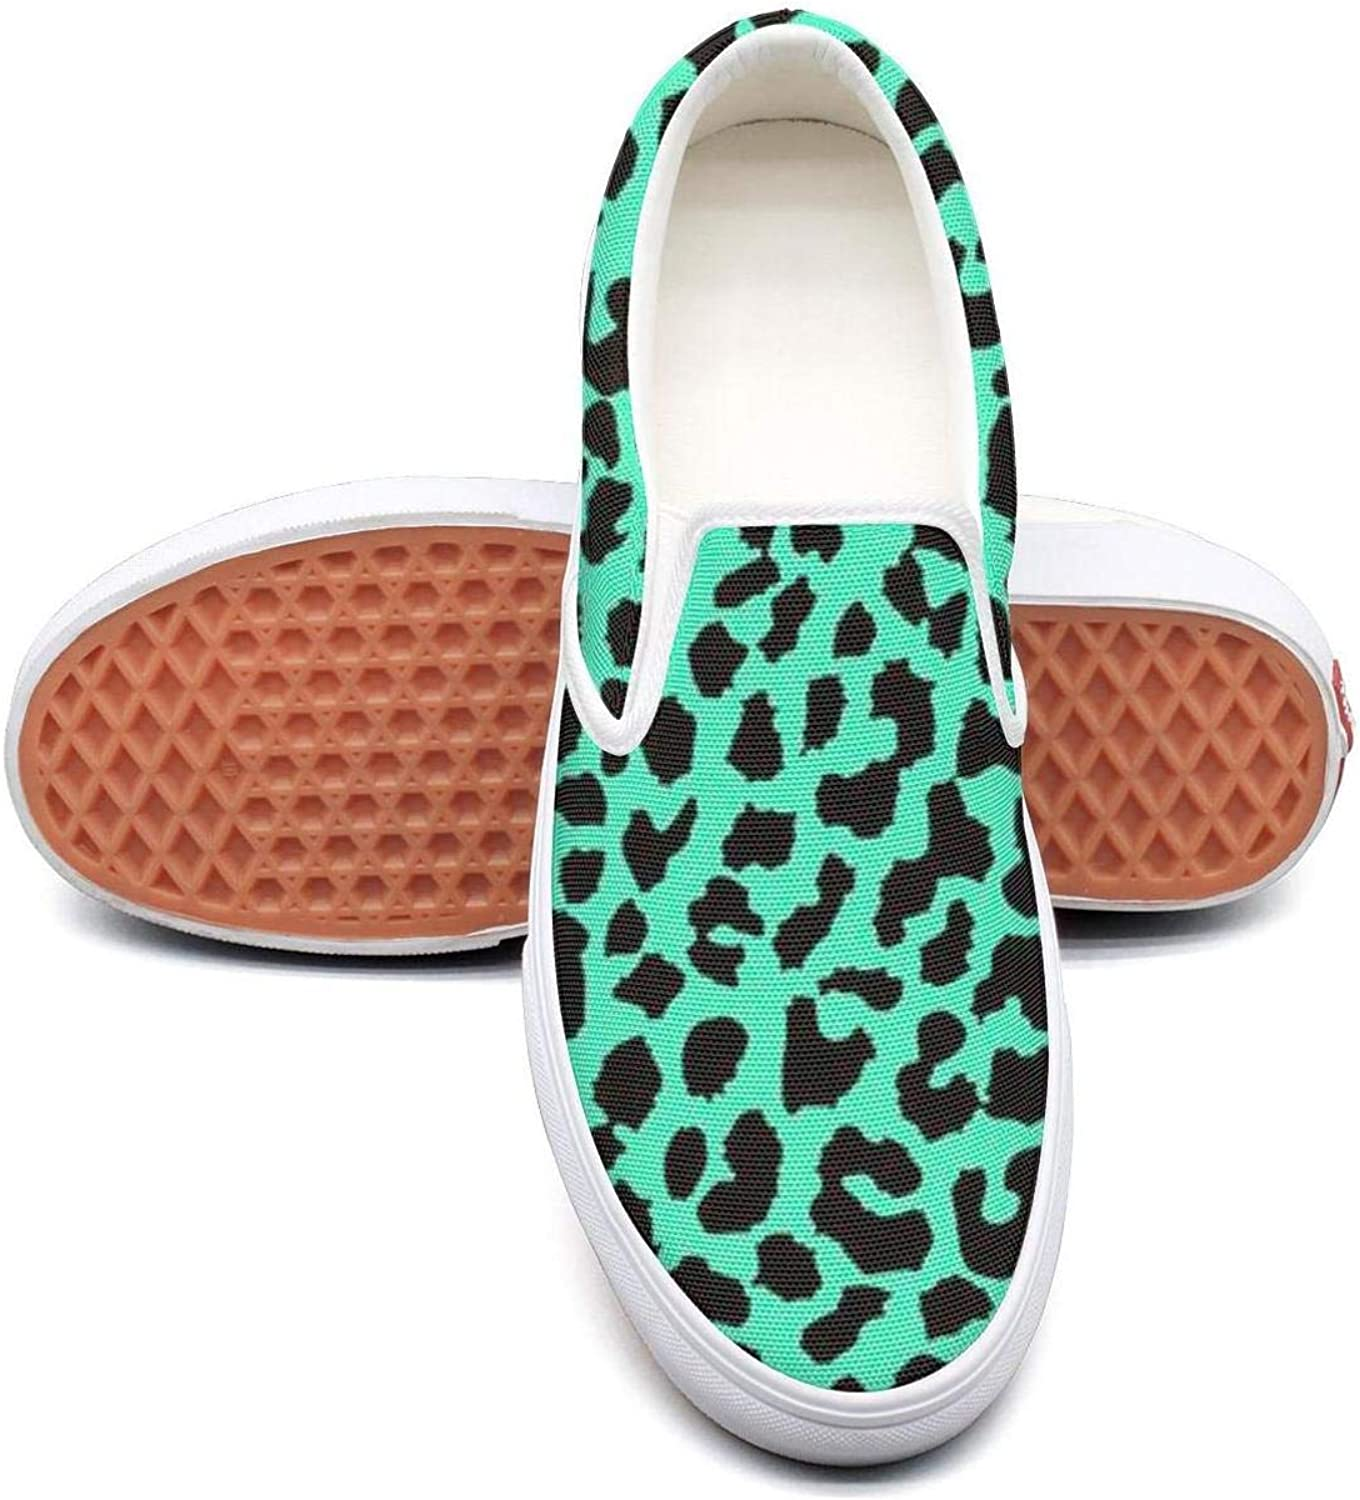 Refyds-es colorful Cheetah Print Wallpaper Womens Fashion Slip on Low Top Lightweight Canvas Basketball Sneakers